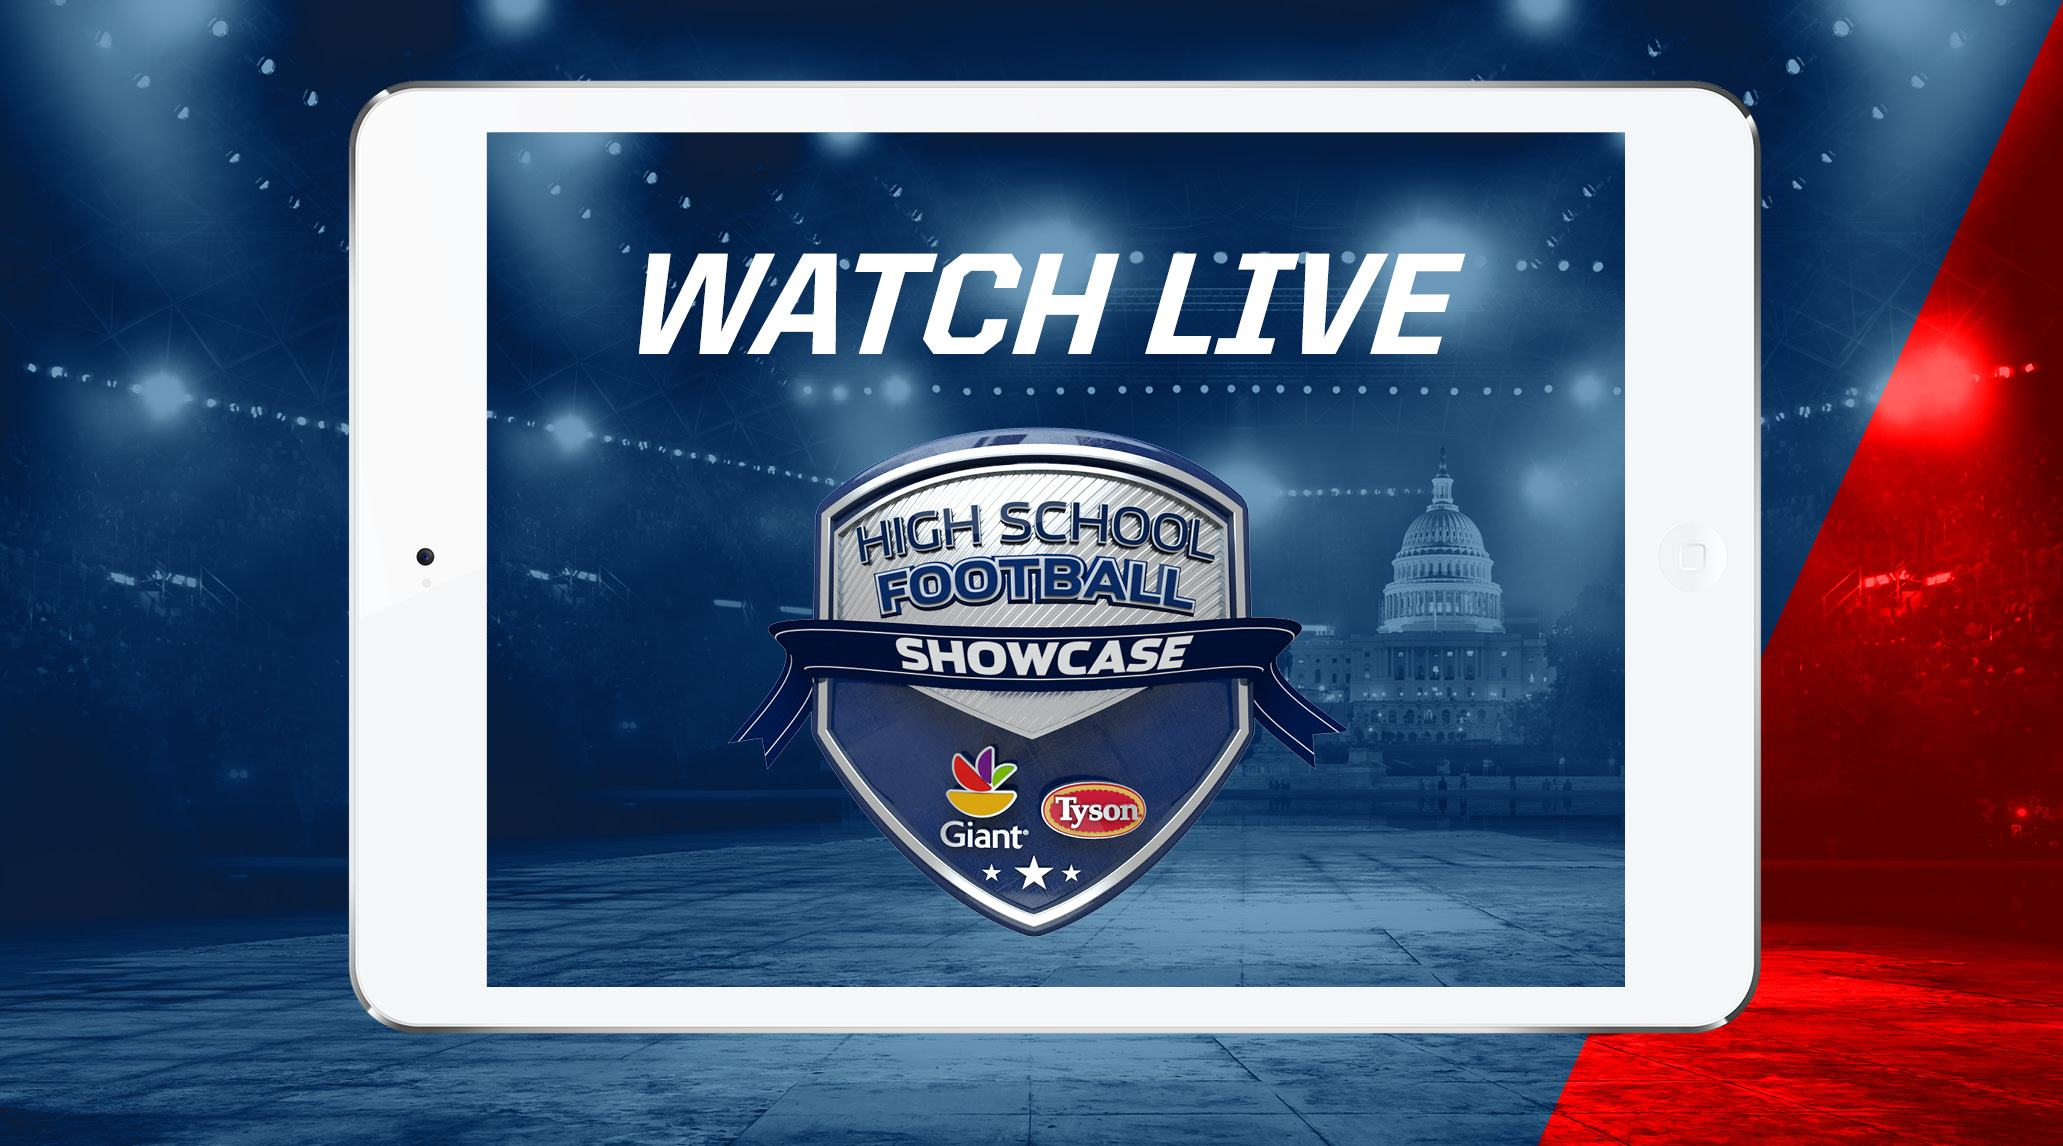 HS Football Showcase Live Presented by Giant